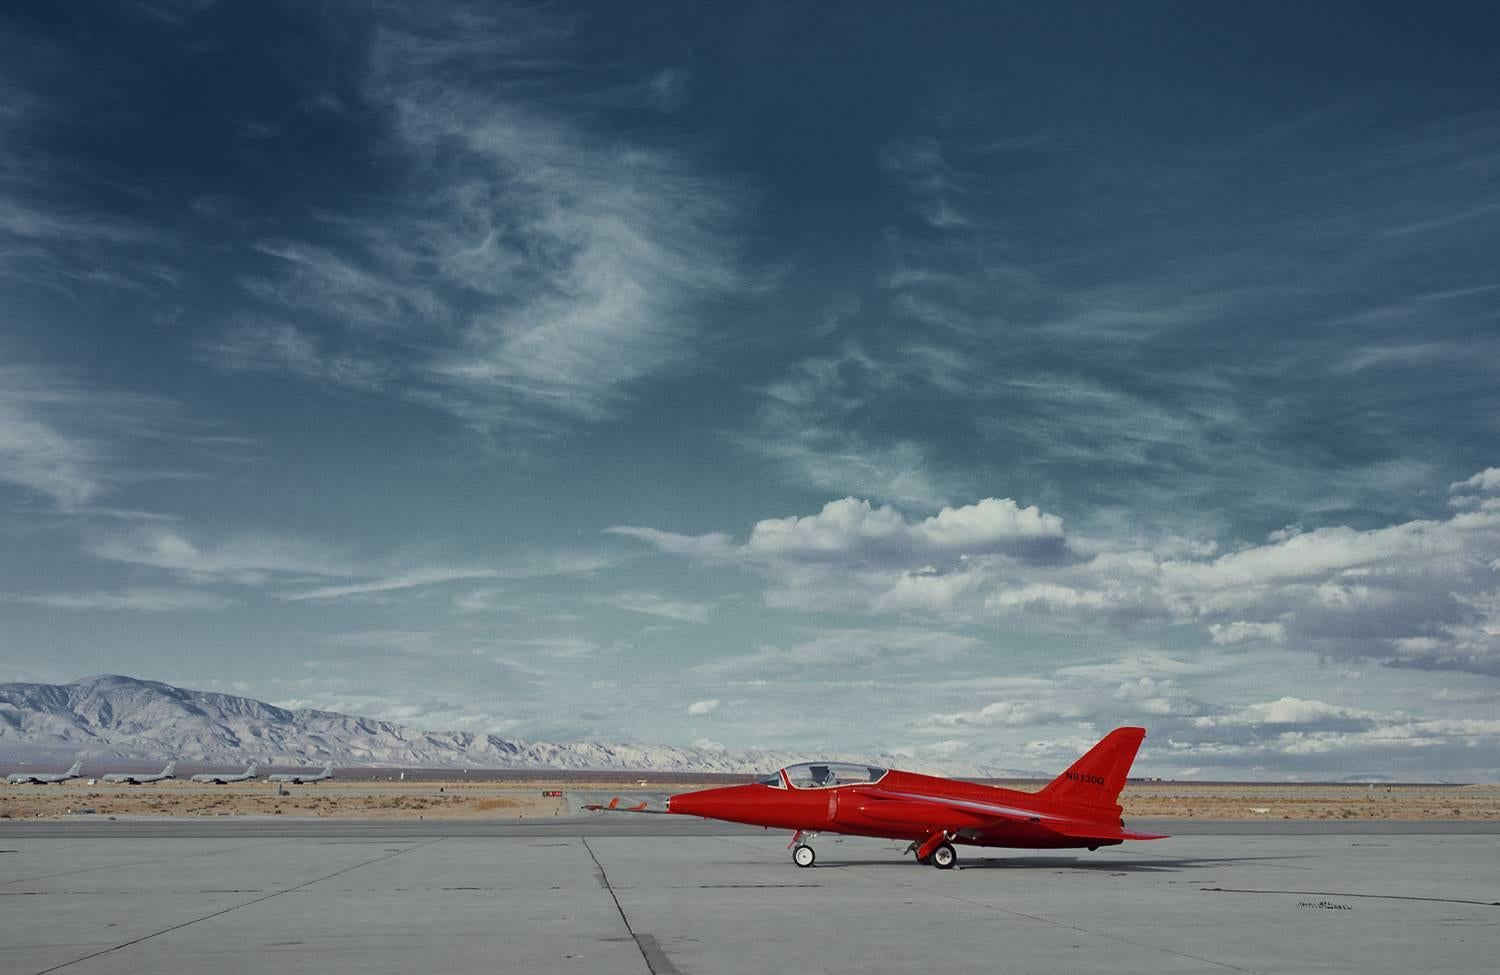 """Red Jet - iconic vintage private jet plane on desert airport tarmac (26 x 40"""")"""